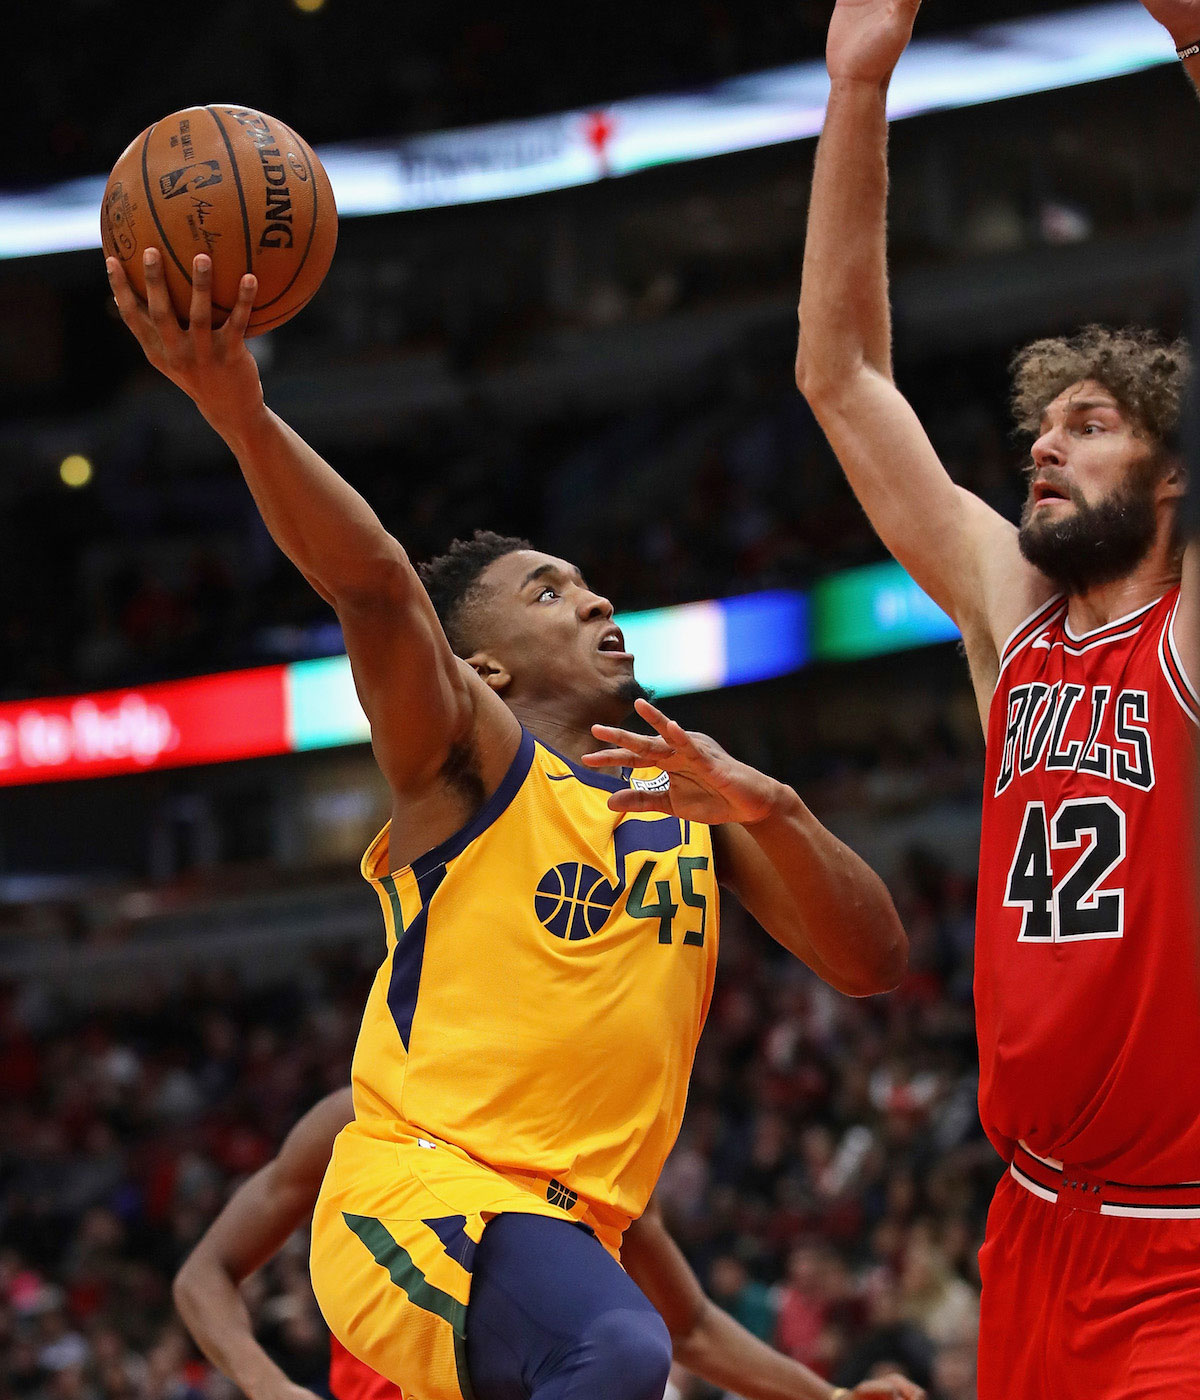 Donovan Mitchell #45 of the Utah Jazz puts up a shot against Robin Lopez #42 of the Chicago Bulls on his way to a game-high 32 points at the United Center on December 13, 2017 in Chicago, Illinois.